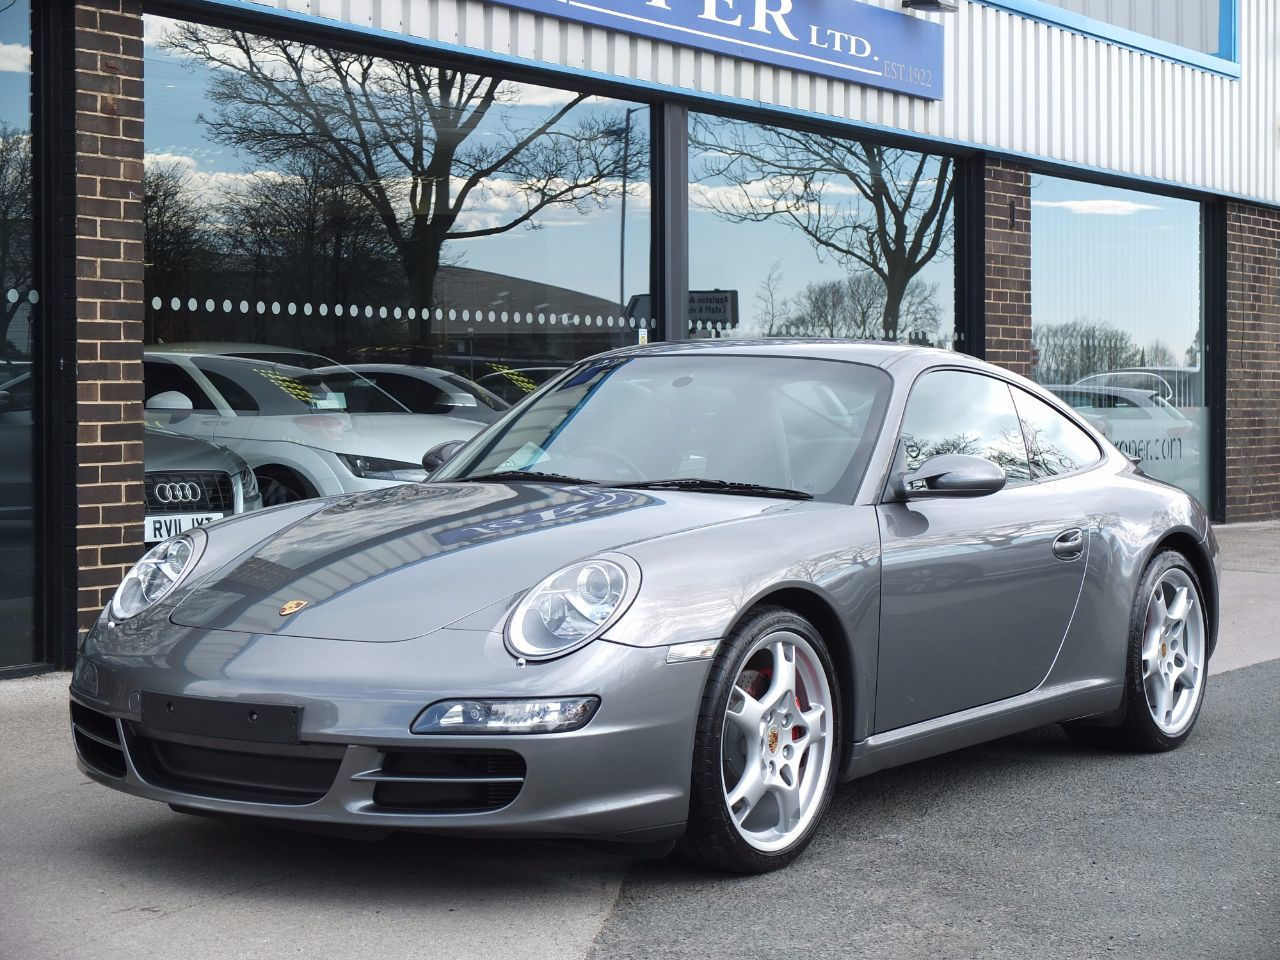 Porsche 911 997 Carrera 3.8 S Coupe C2S Coupe Petrol Seal Grey MetallicPorsche 911 997 Carrera 3.8 S Coupe C2S Coupe Petrol Seal Grey Metallic at fa Roper Ltd Bradford